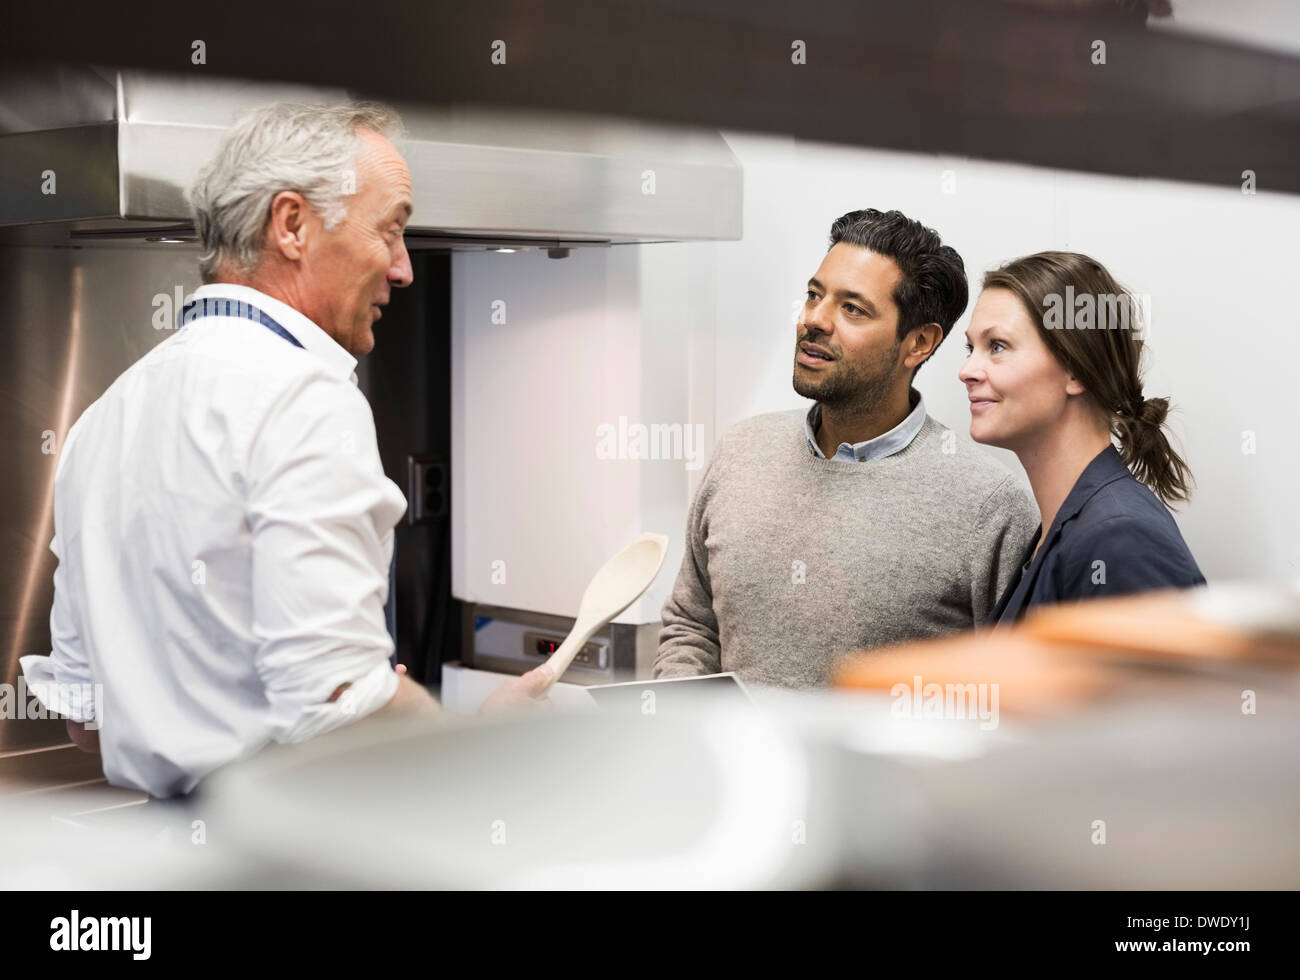 Chef talking to business people in commercial kitchen - Stock Image